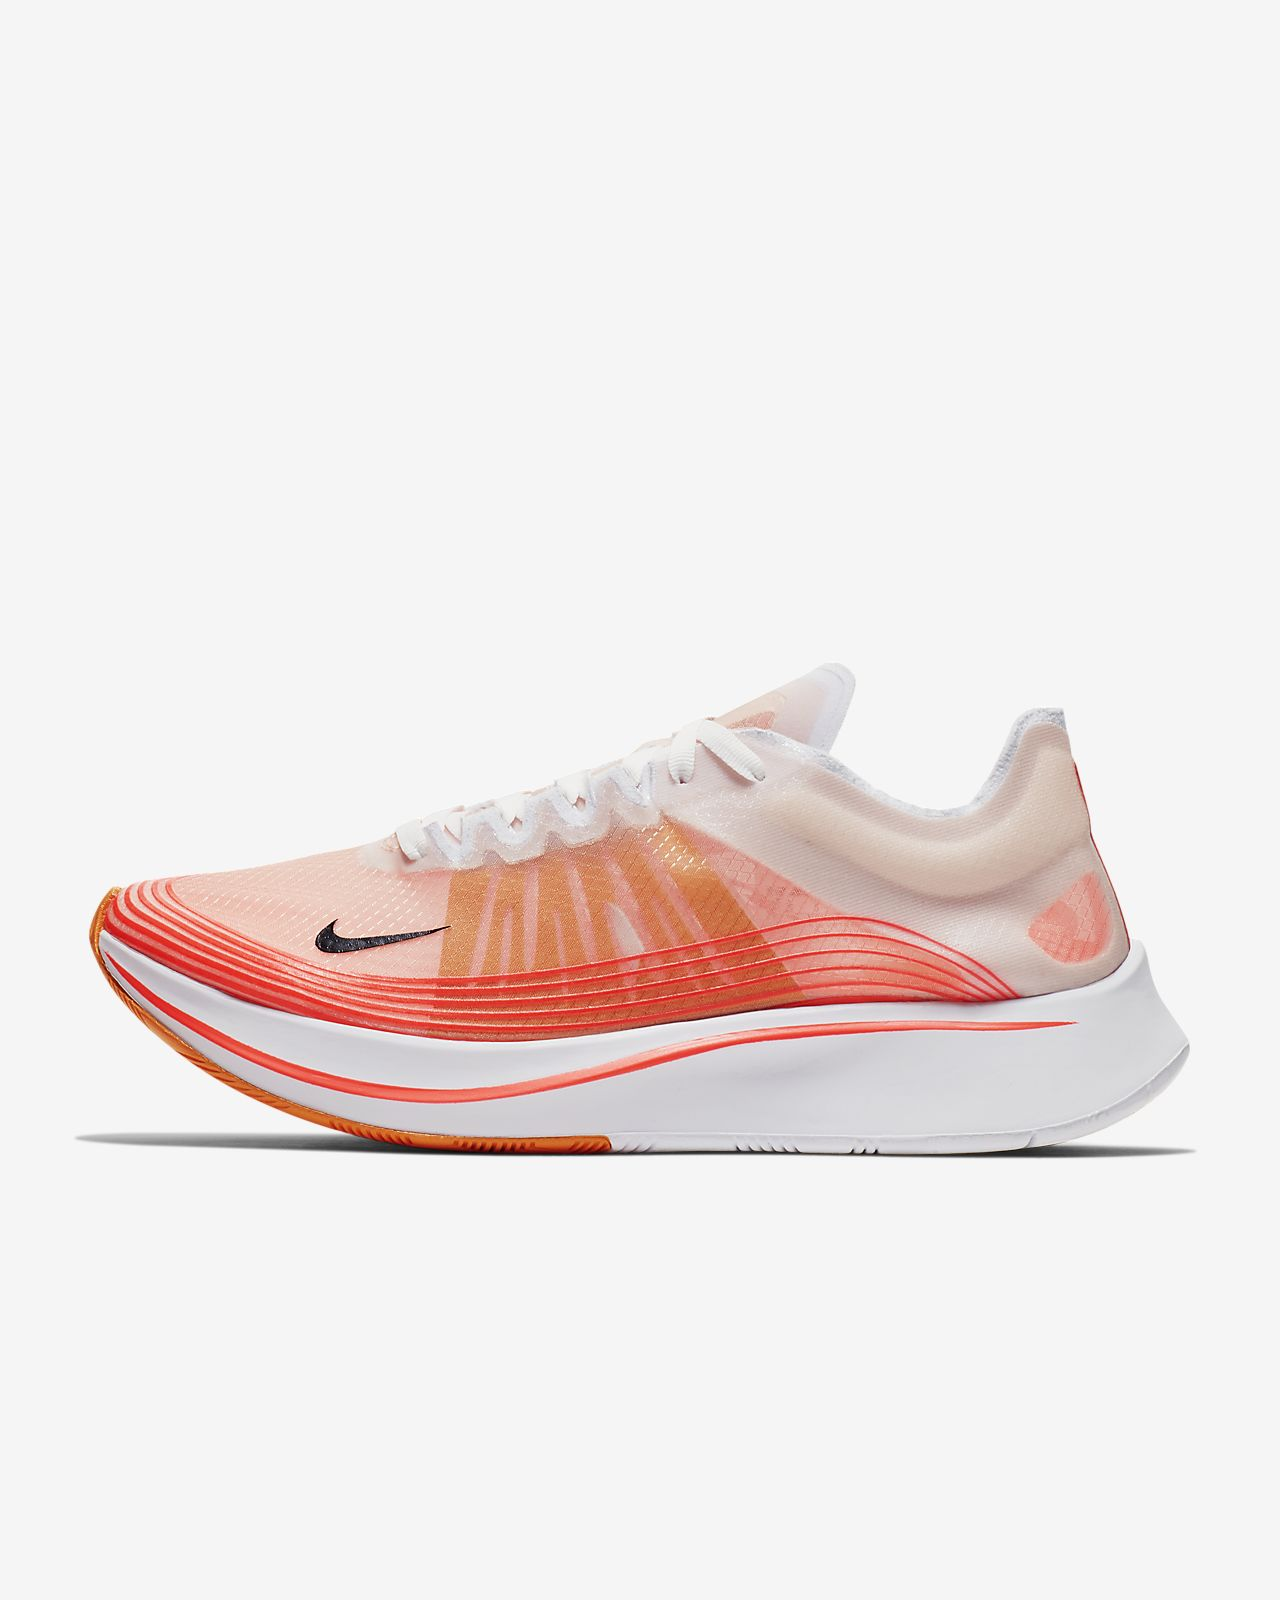 Nike Zoom Fly SP Women s Running Shoe. Nike.com 1029f879f0